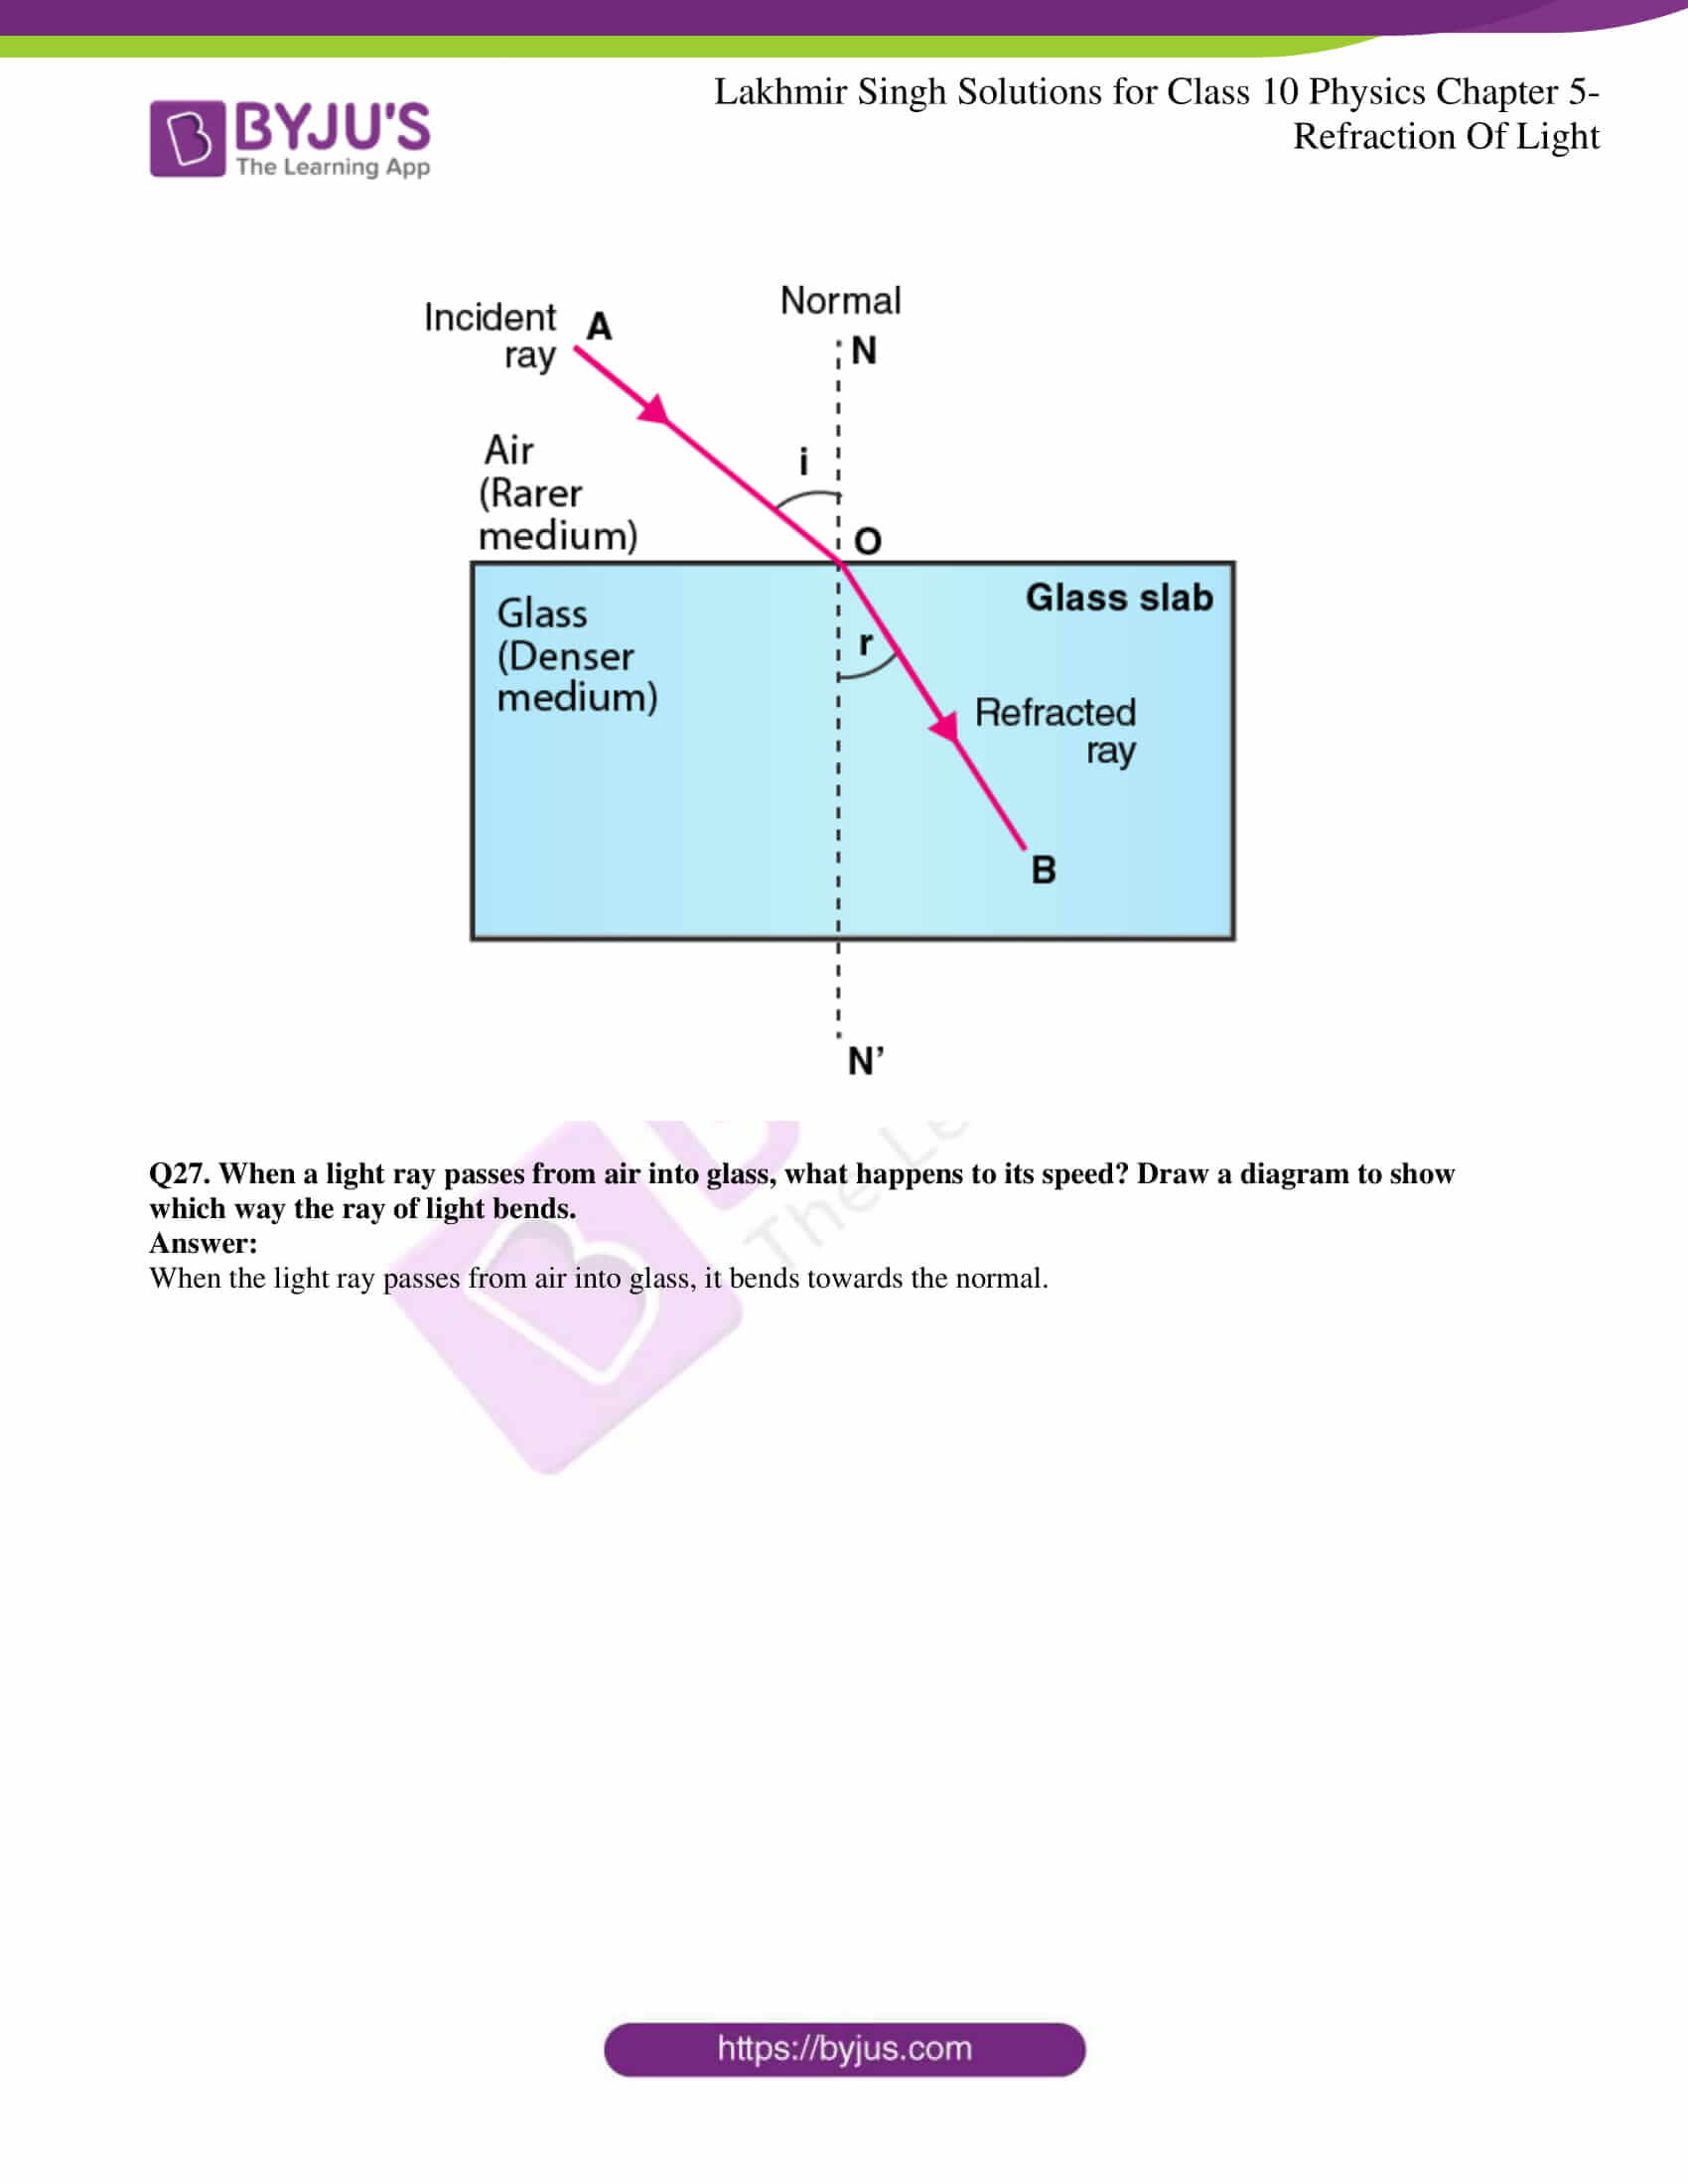 lakhmir singh solutions class 10 physics chapter 5 13